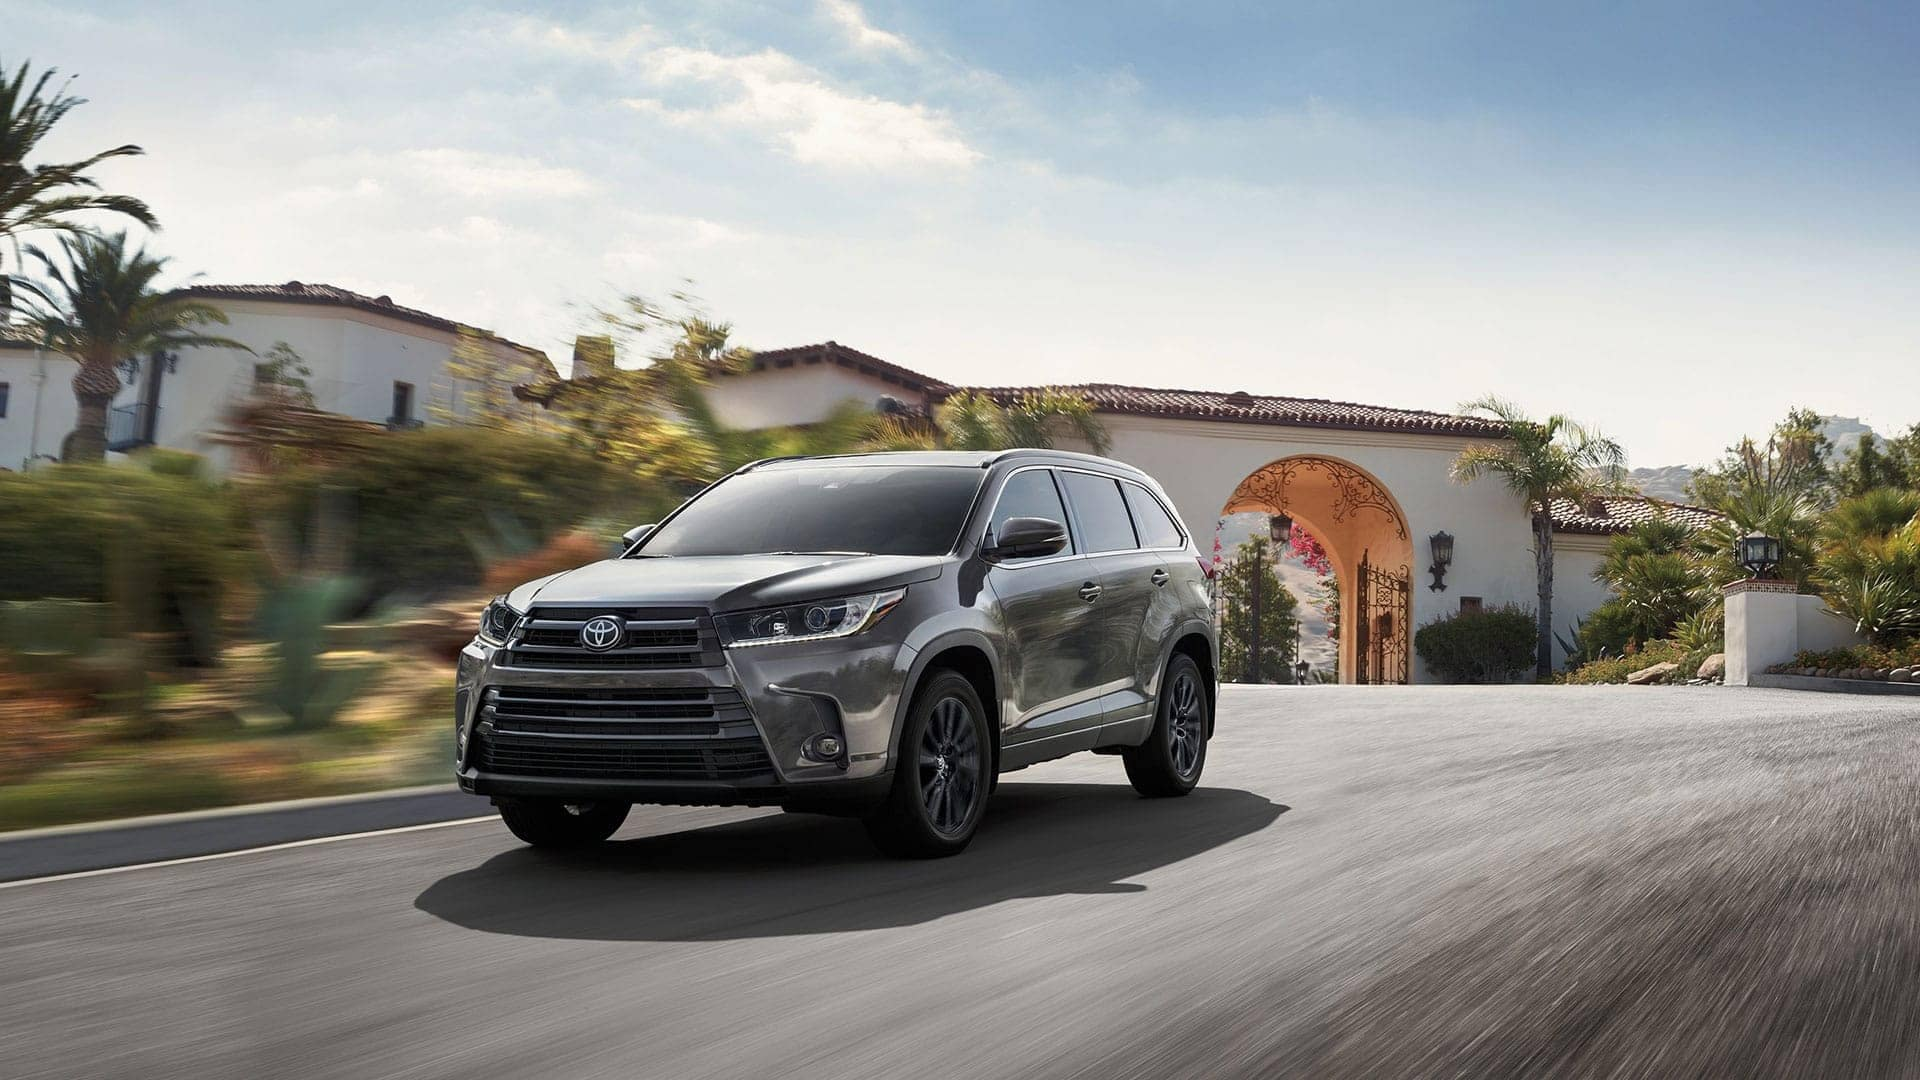 2019 Toyota Highlander driving past adobe house